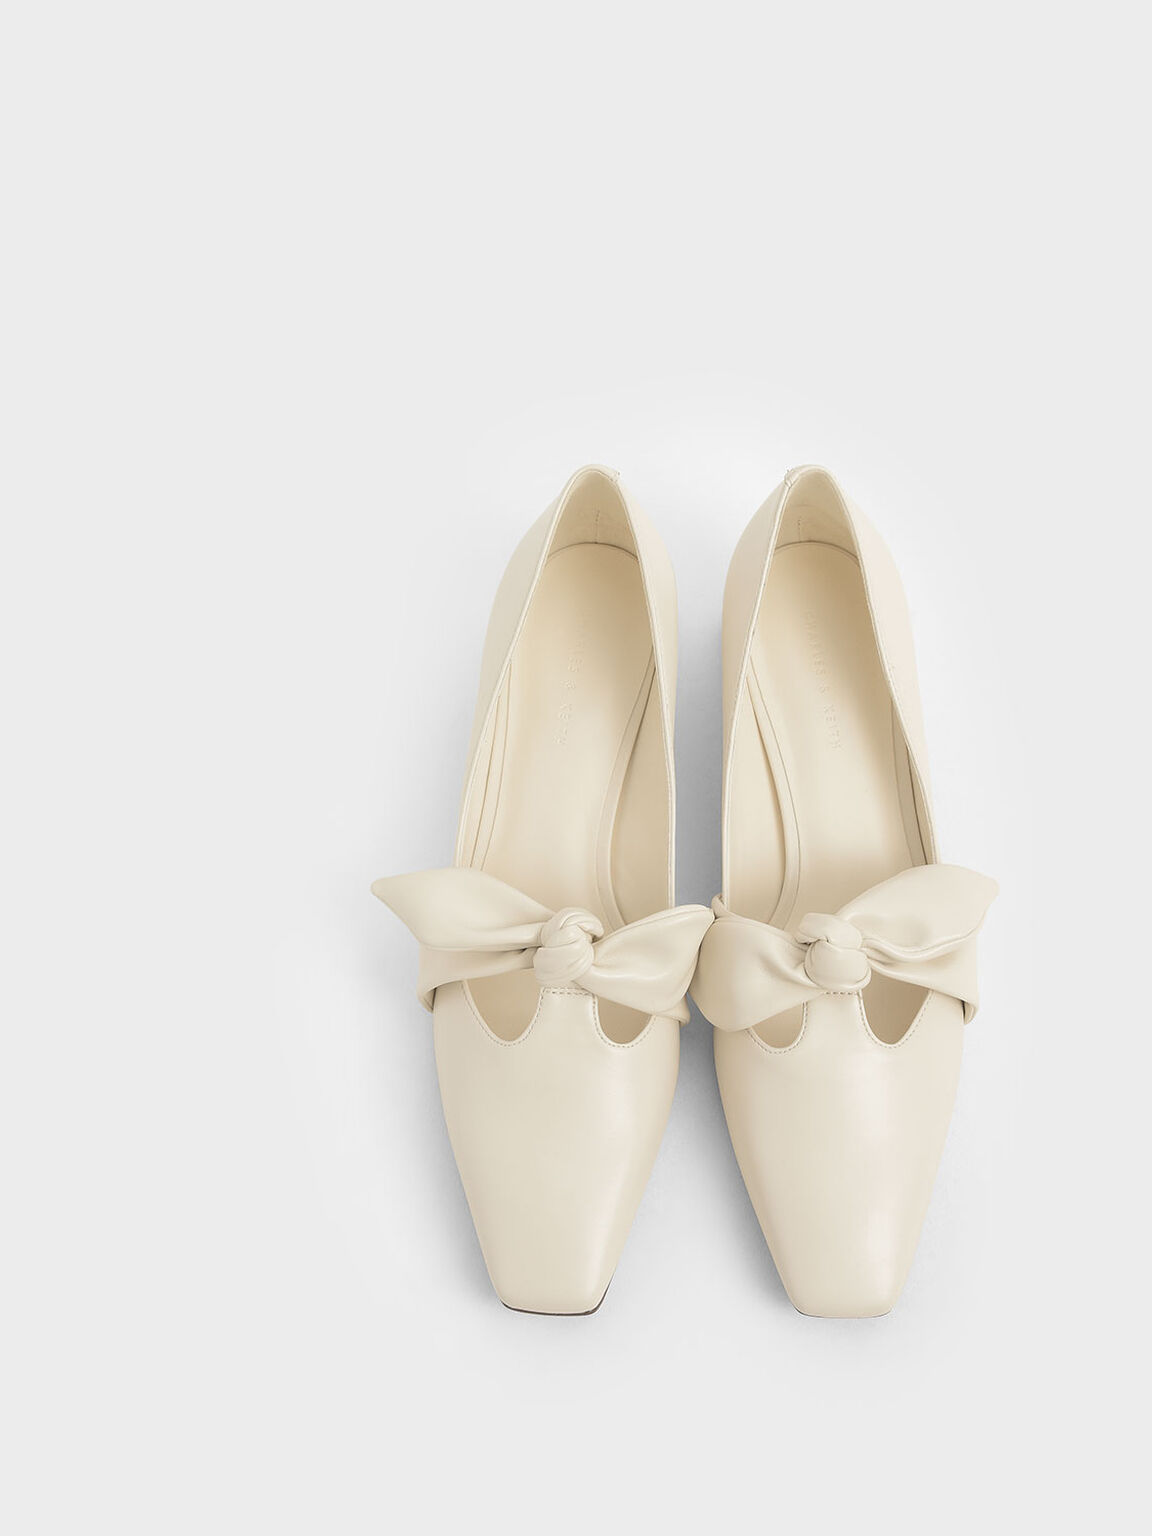 Knotted Strap Pumps, Cream, hi-res